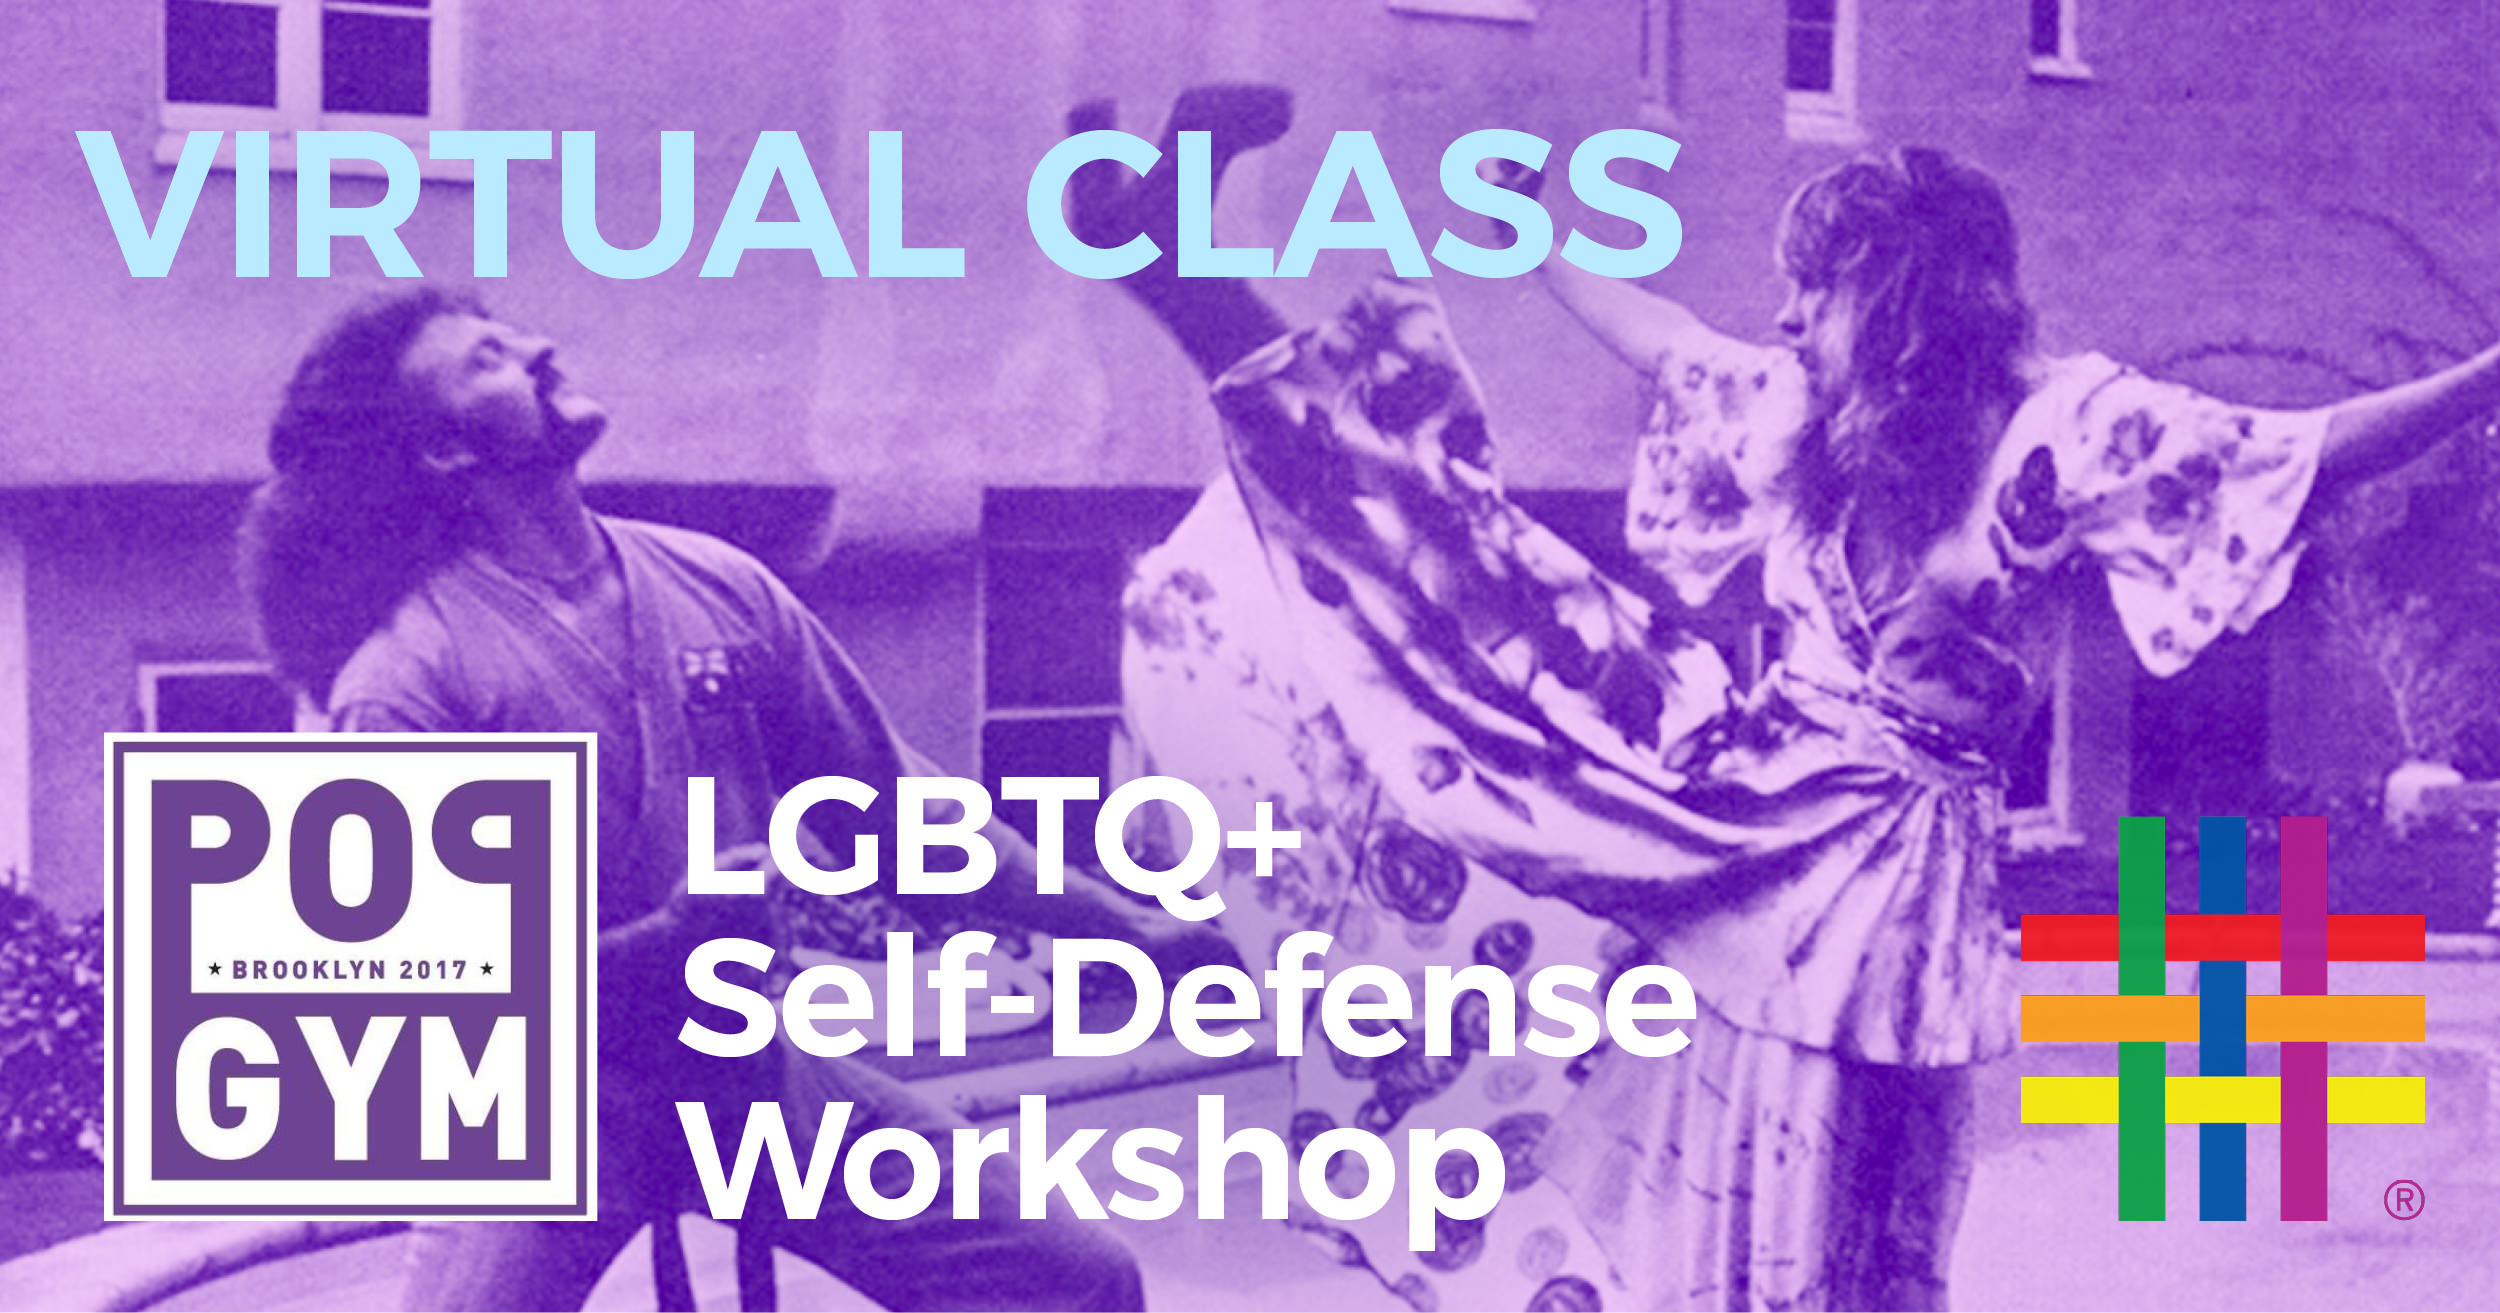 LGBTQ+ Self-Defense Class at Brooklyn Community Pride Center